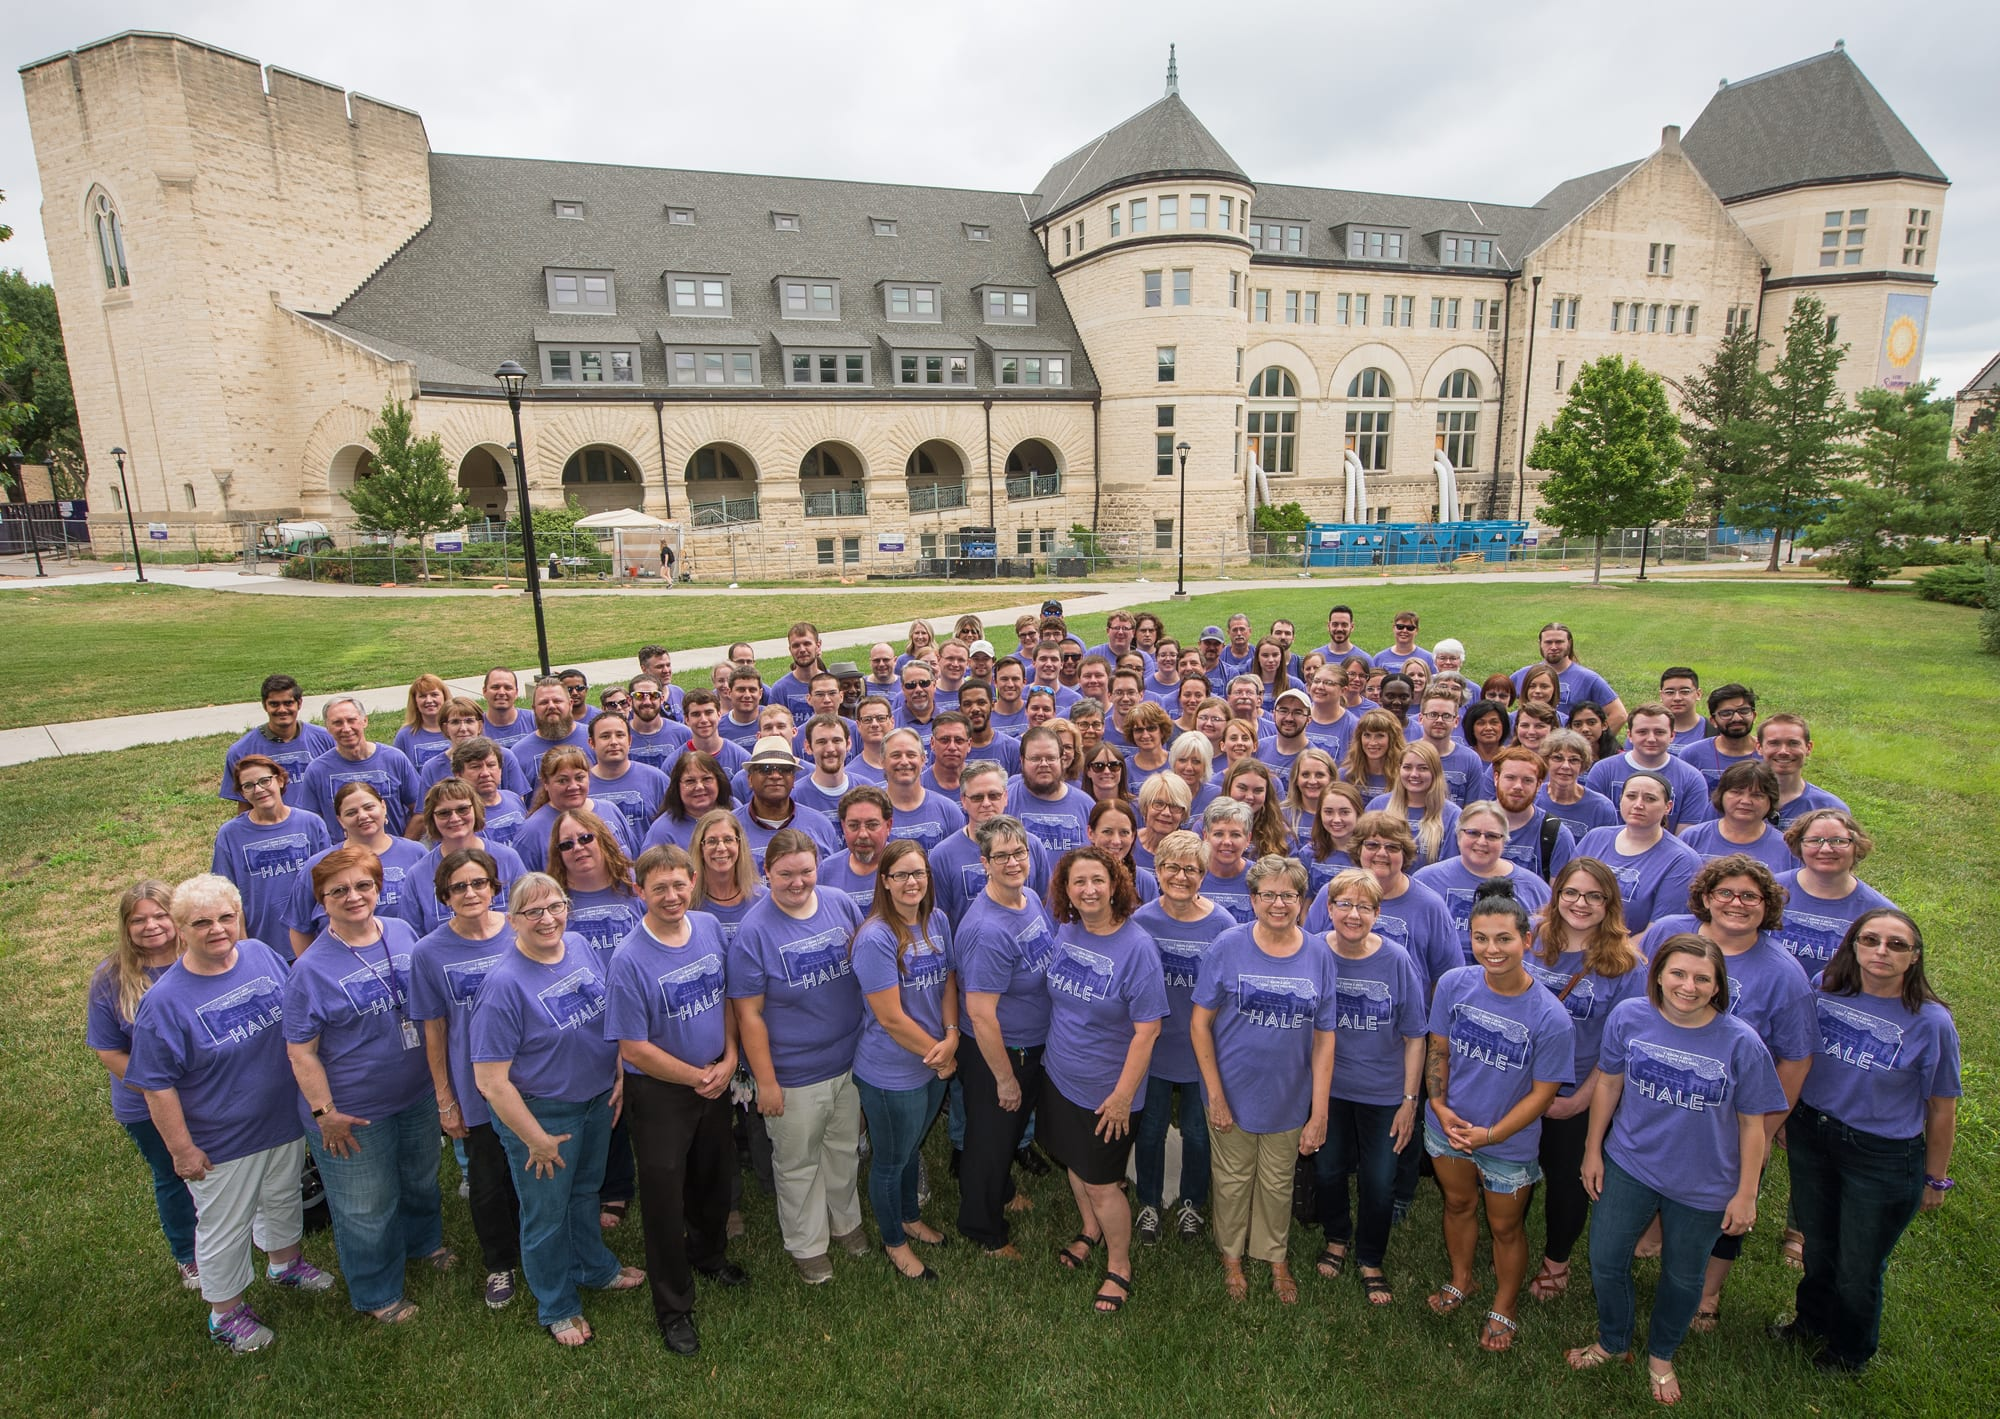 Nearly 100 employees wearing purple Hale Library t-shirts gather for a group photo on the grass in front of the Hale Library building.